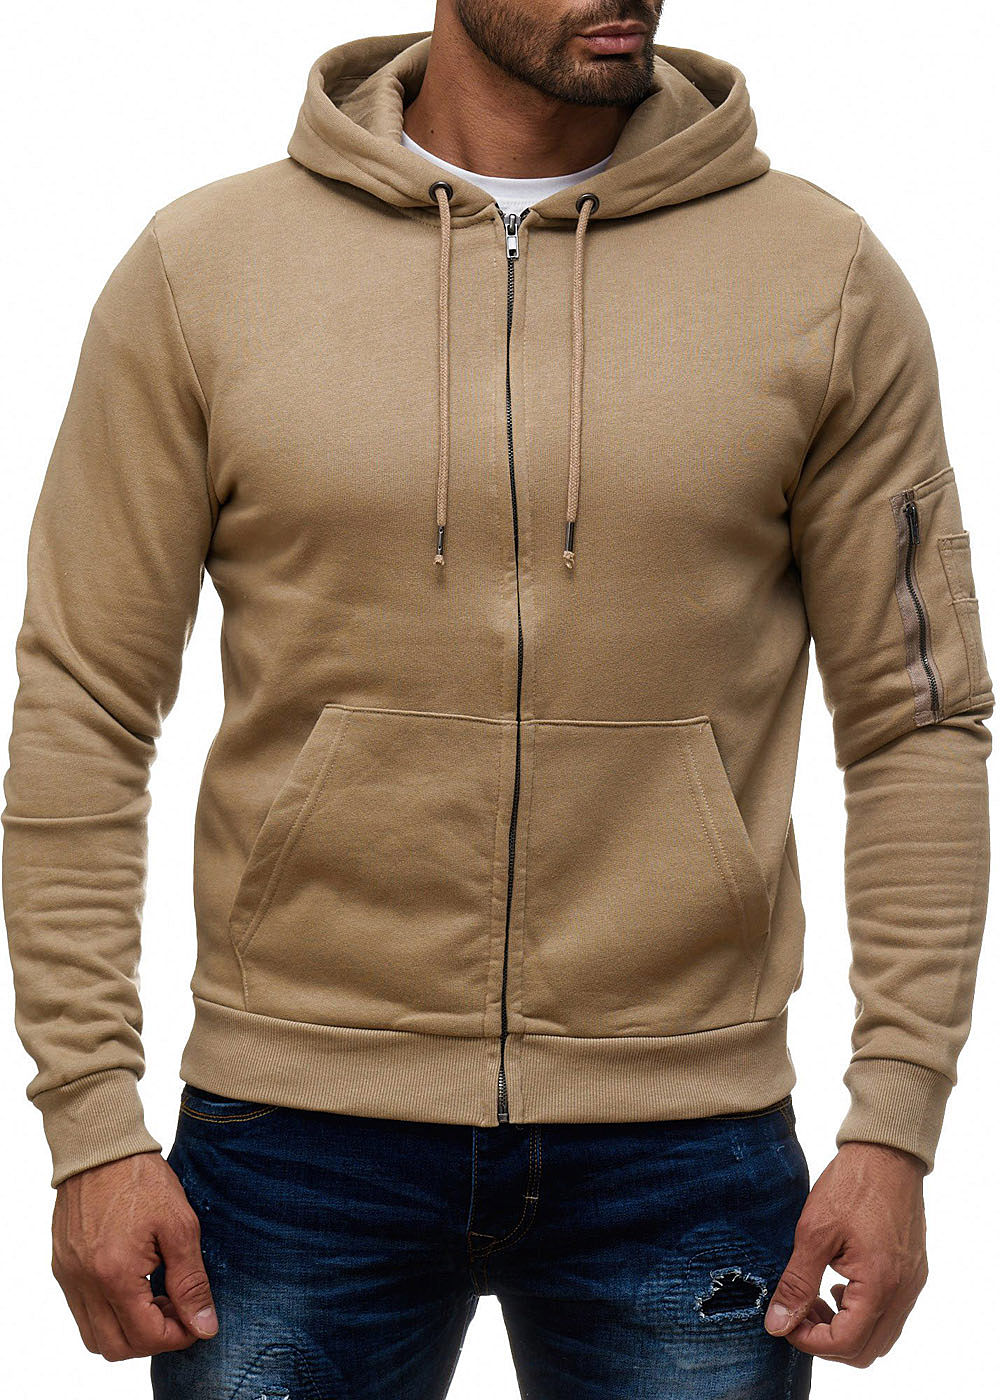 seventyseven lifestyle herren zip hoodie kapuze 2 taschen kordelzug mushroom beige 77onlineshop. Black Bedroom Furniture Sets. Home Design Ideas